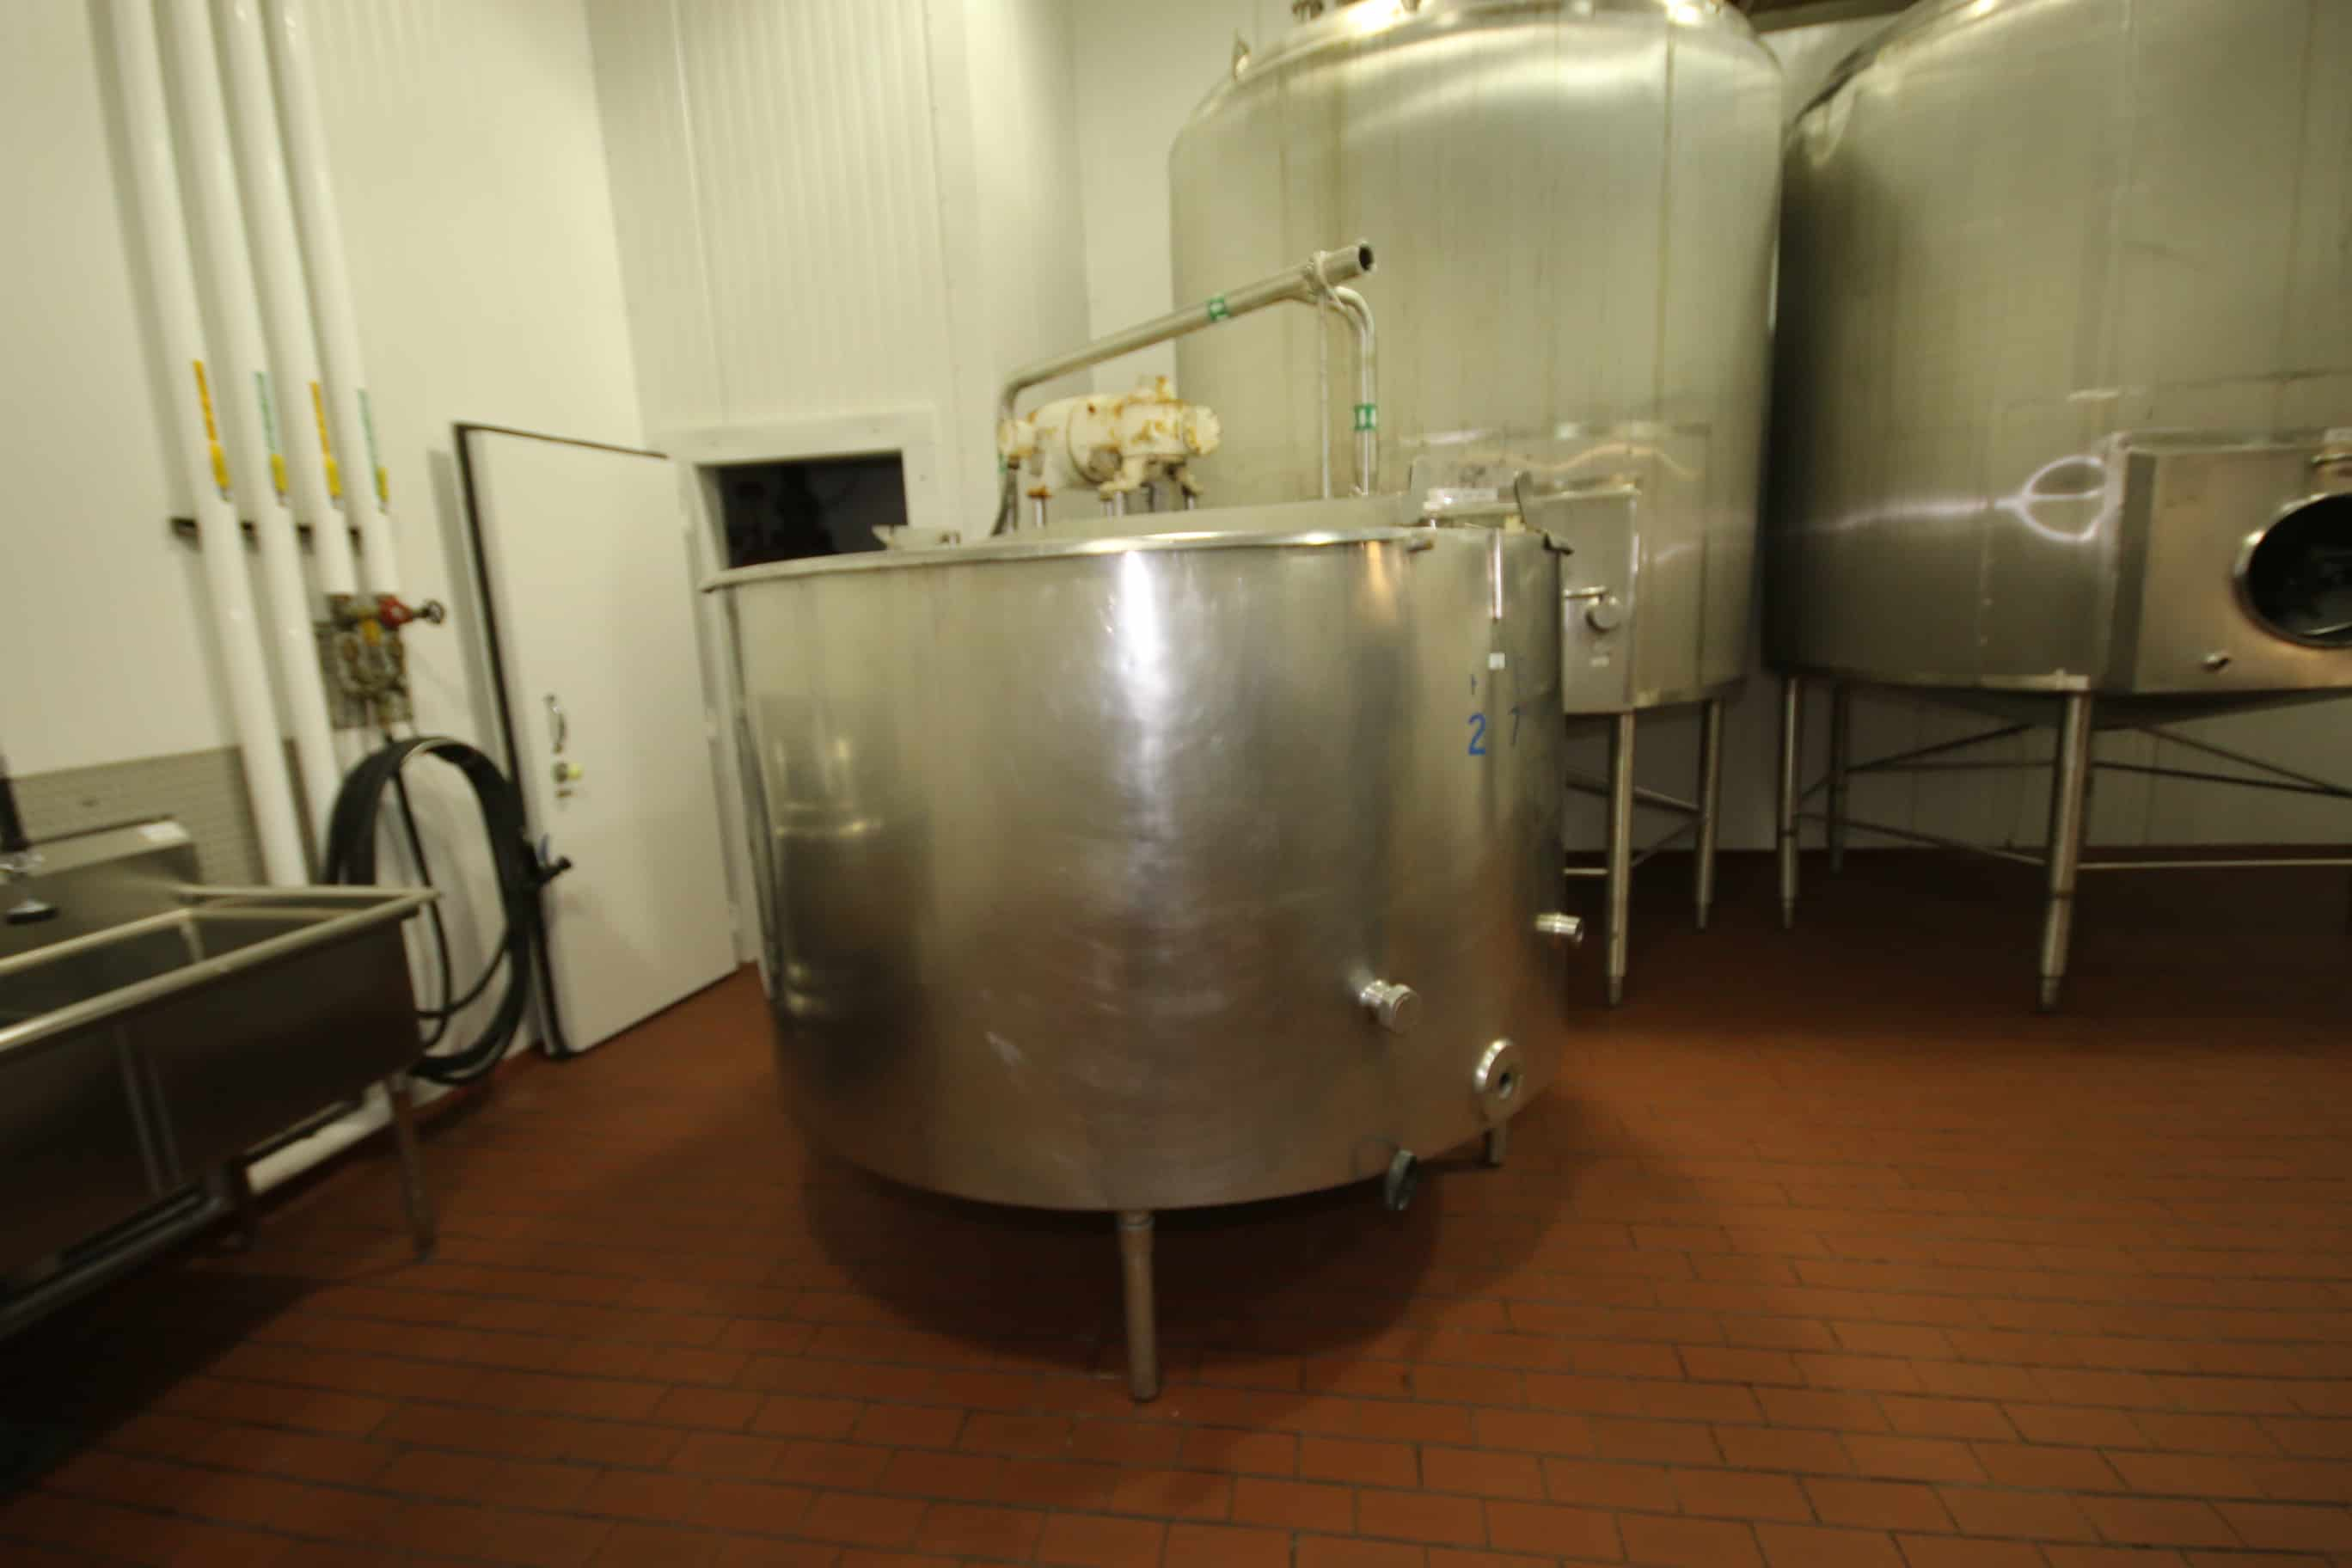 600 Gal. Jacketed Hinged Lid S/S Tank, with Bottom Sweep Agitator, Dual Baffles & Sprayball